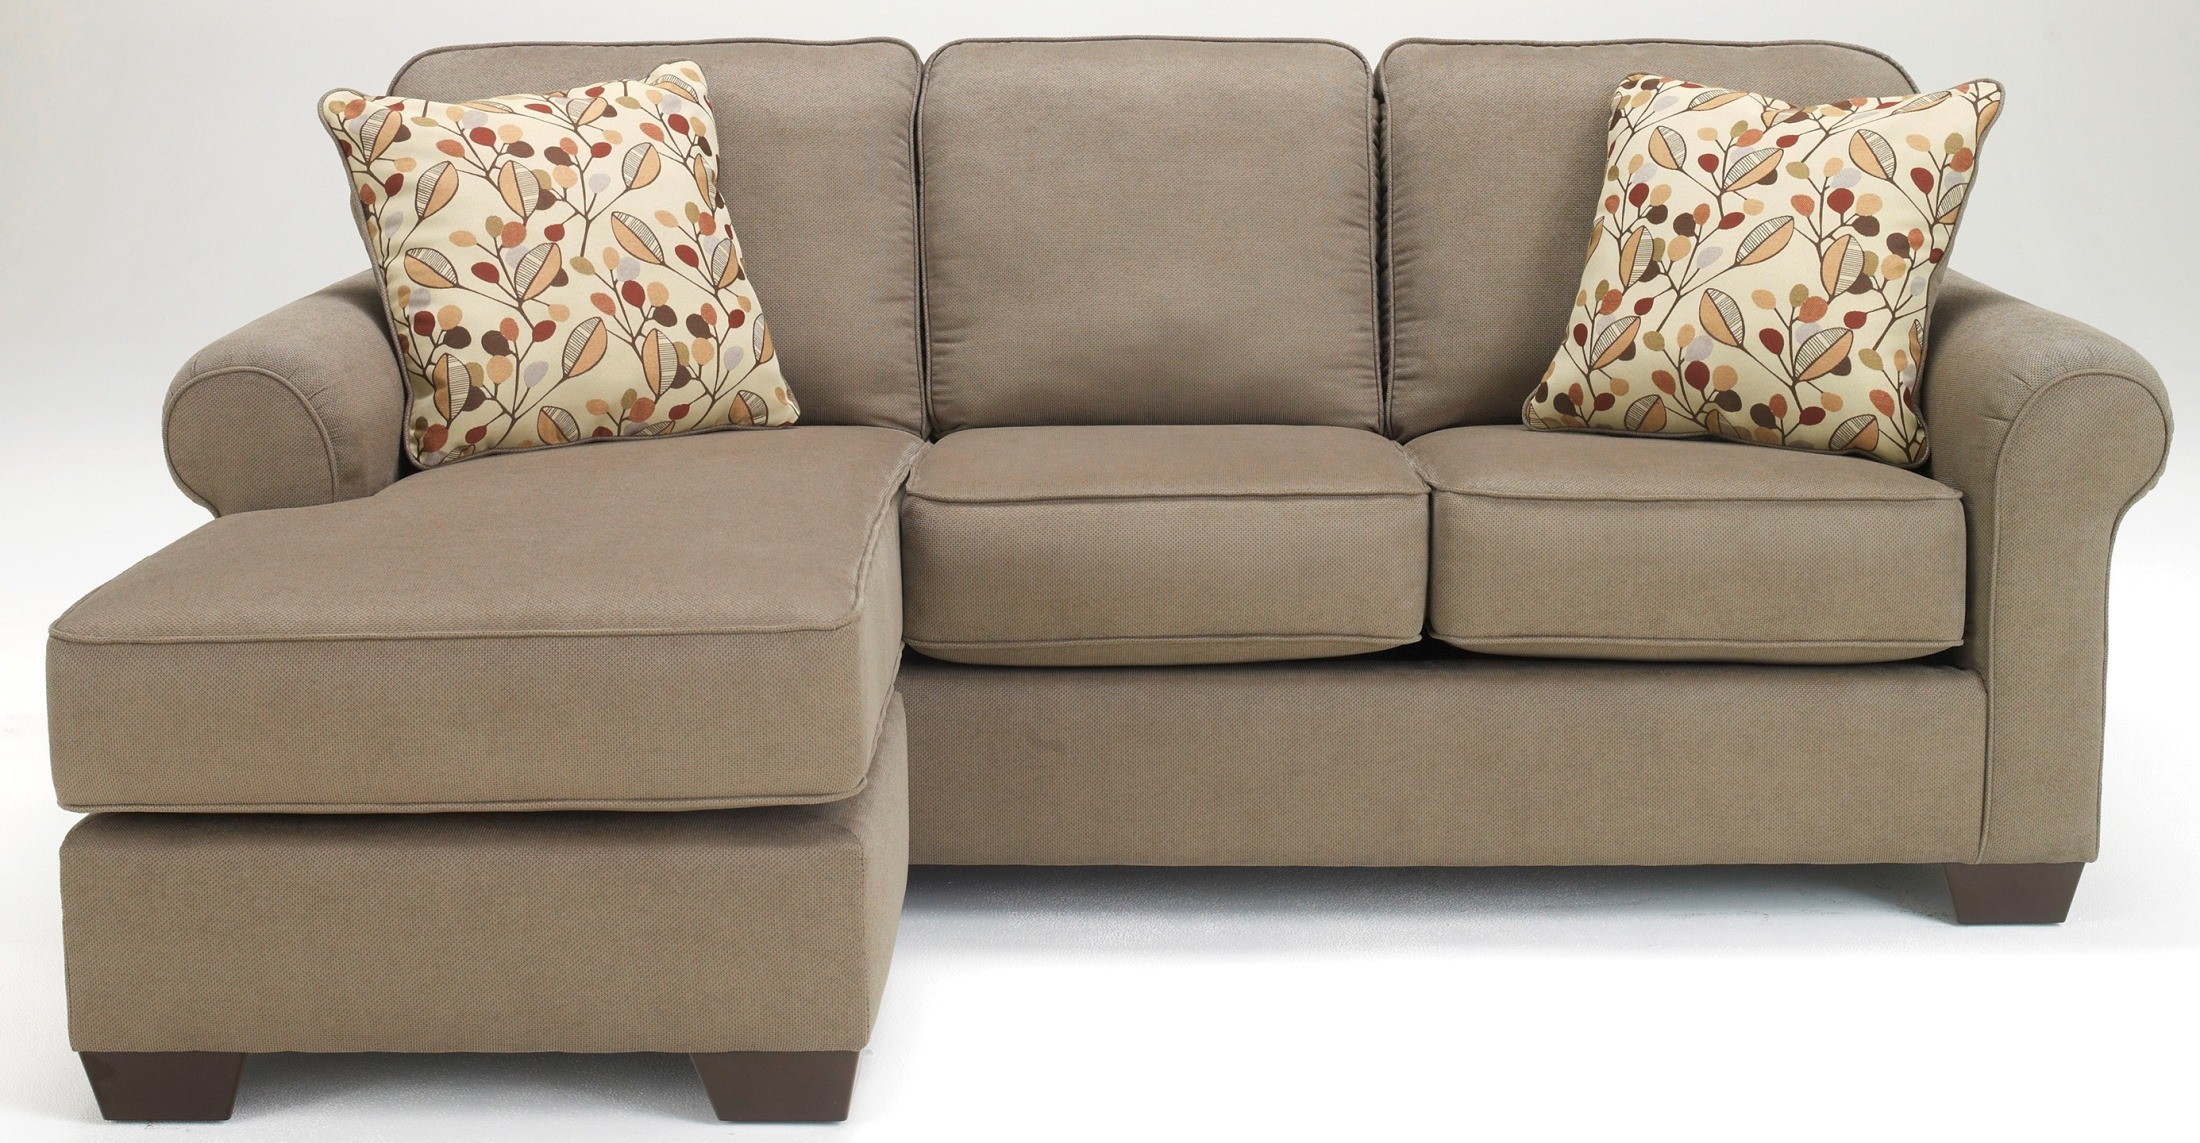 Danely Dusk Sofa With Chaise From Ashley 3550018